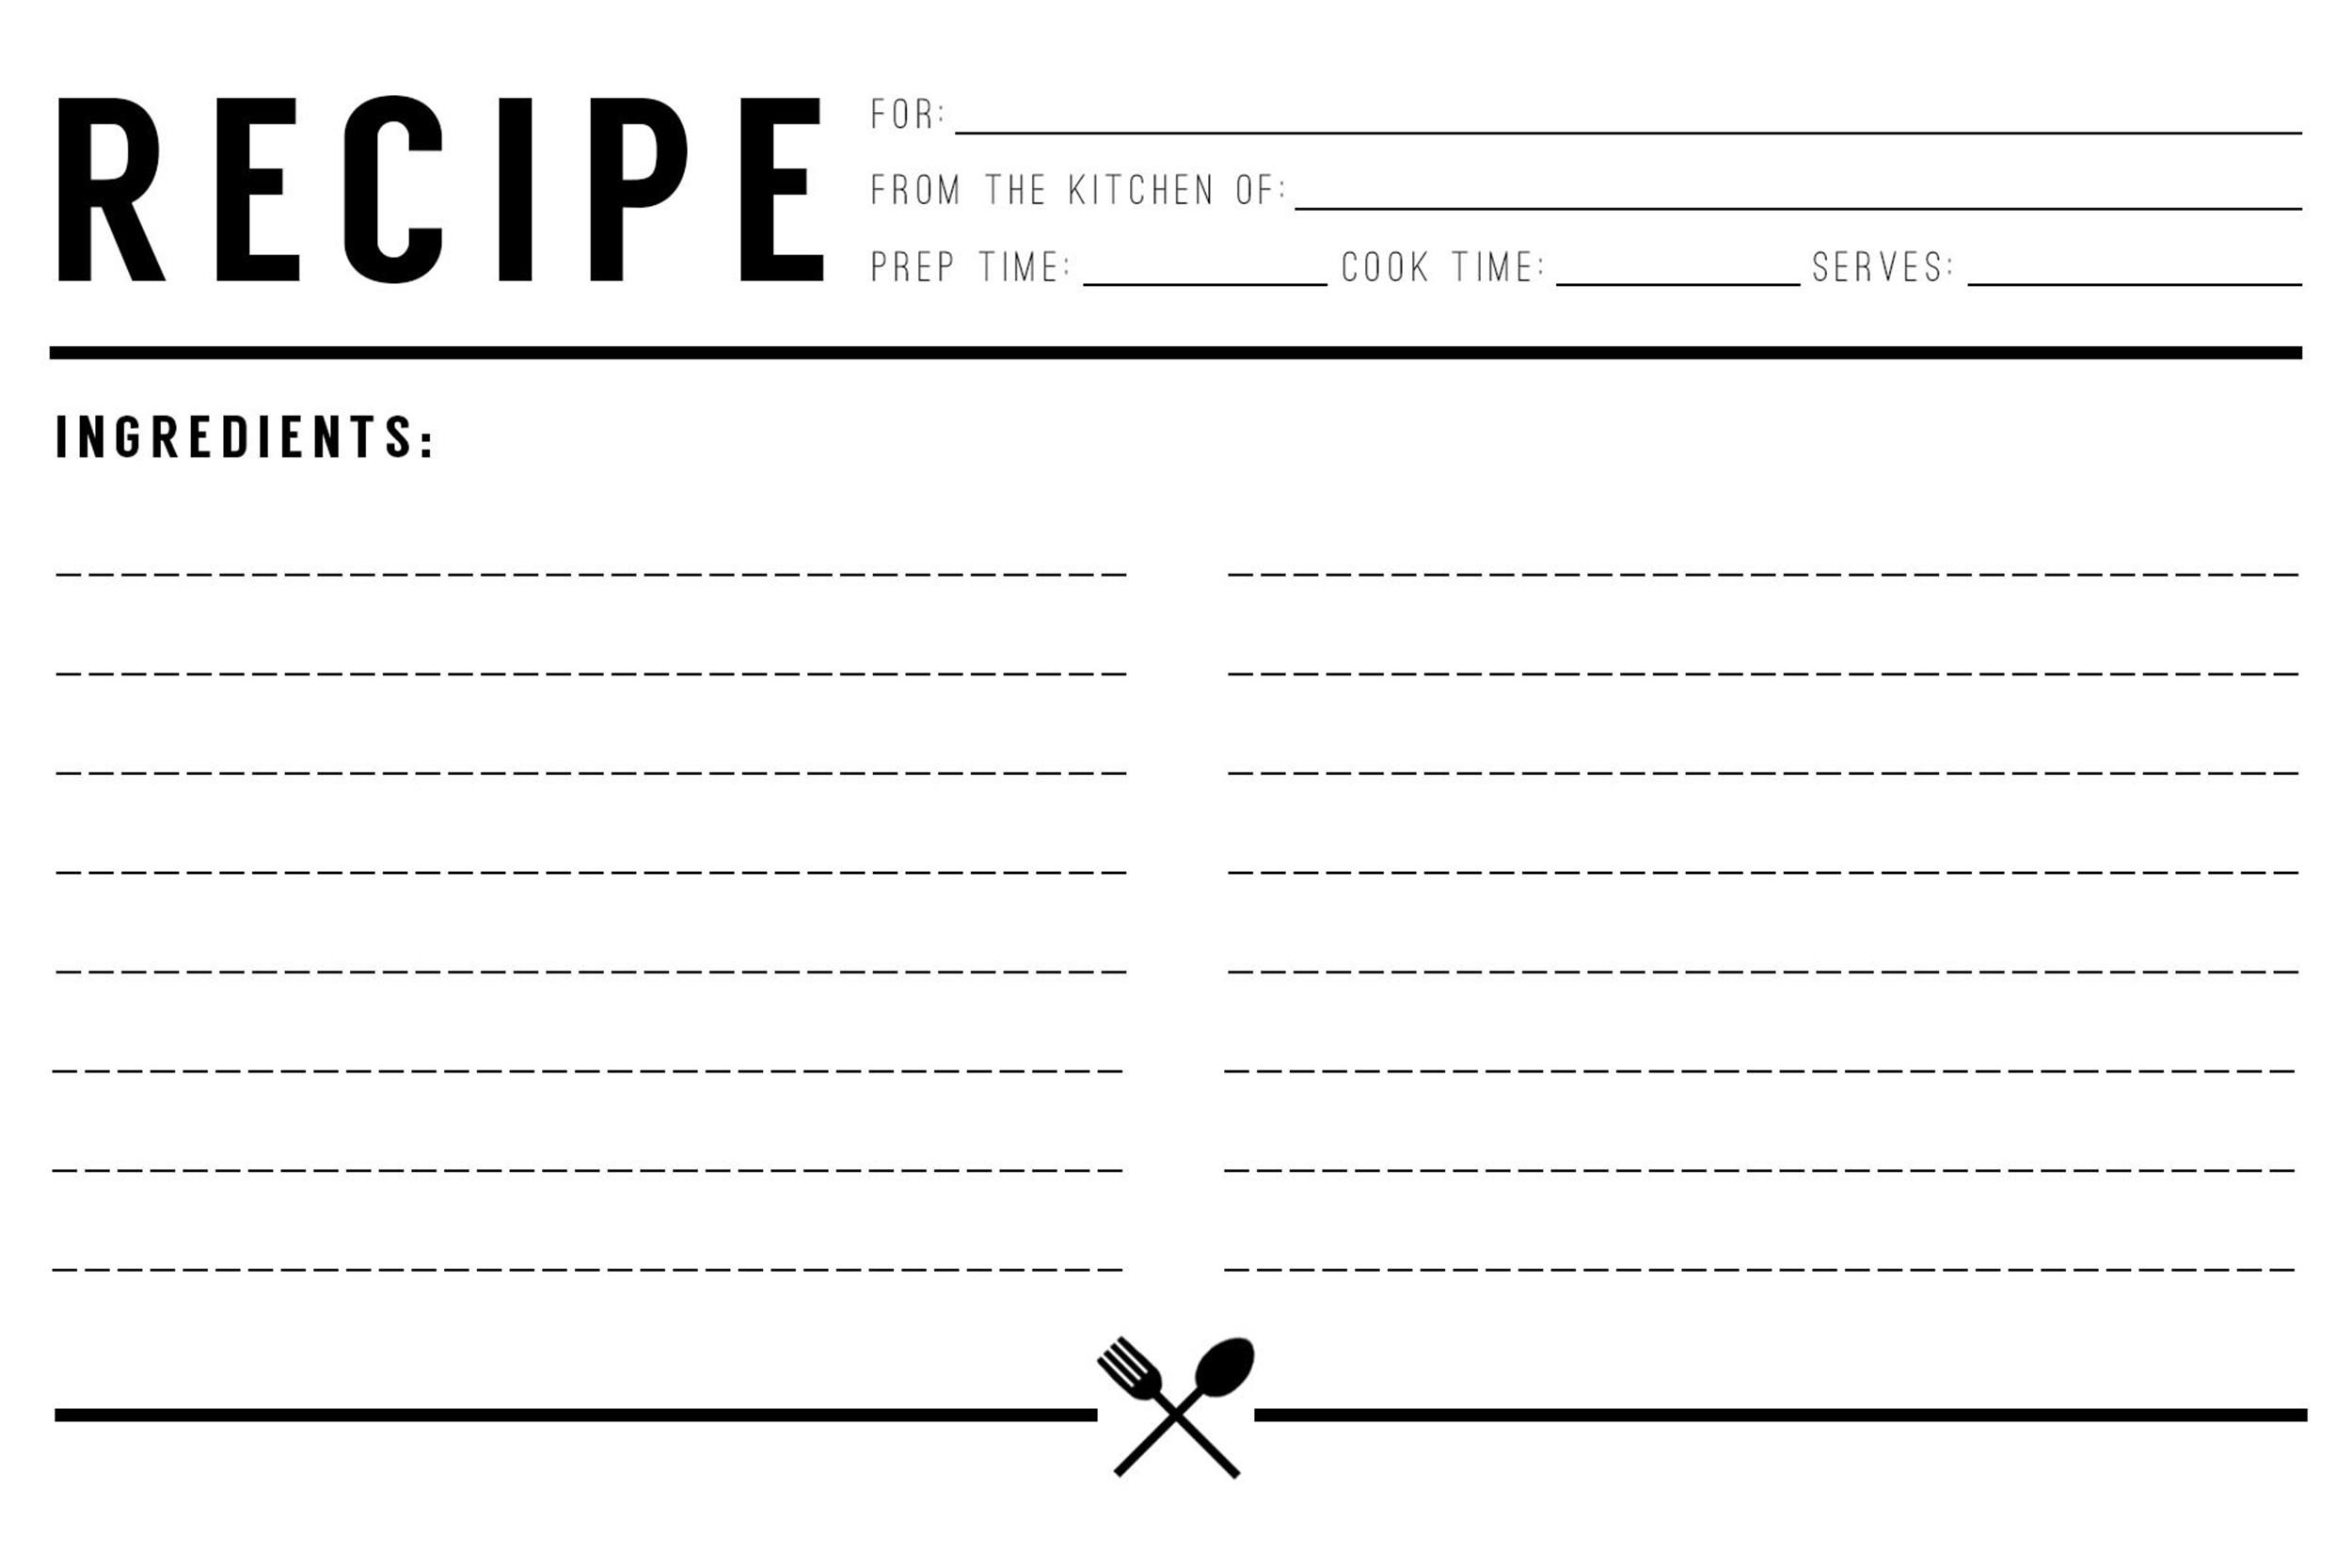 recipe cookbook template - Forte.euforic.co